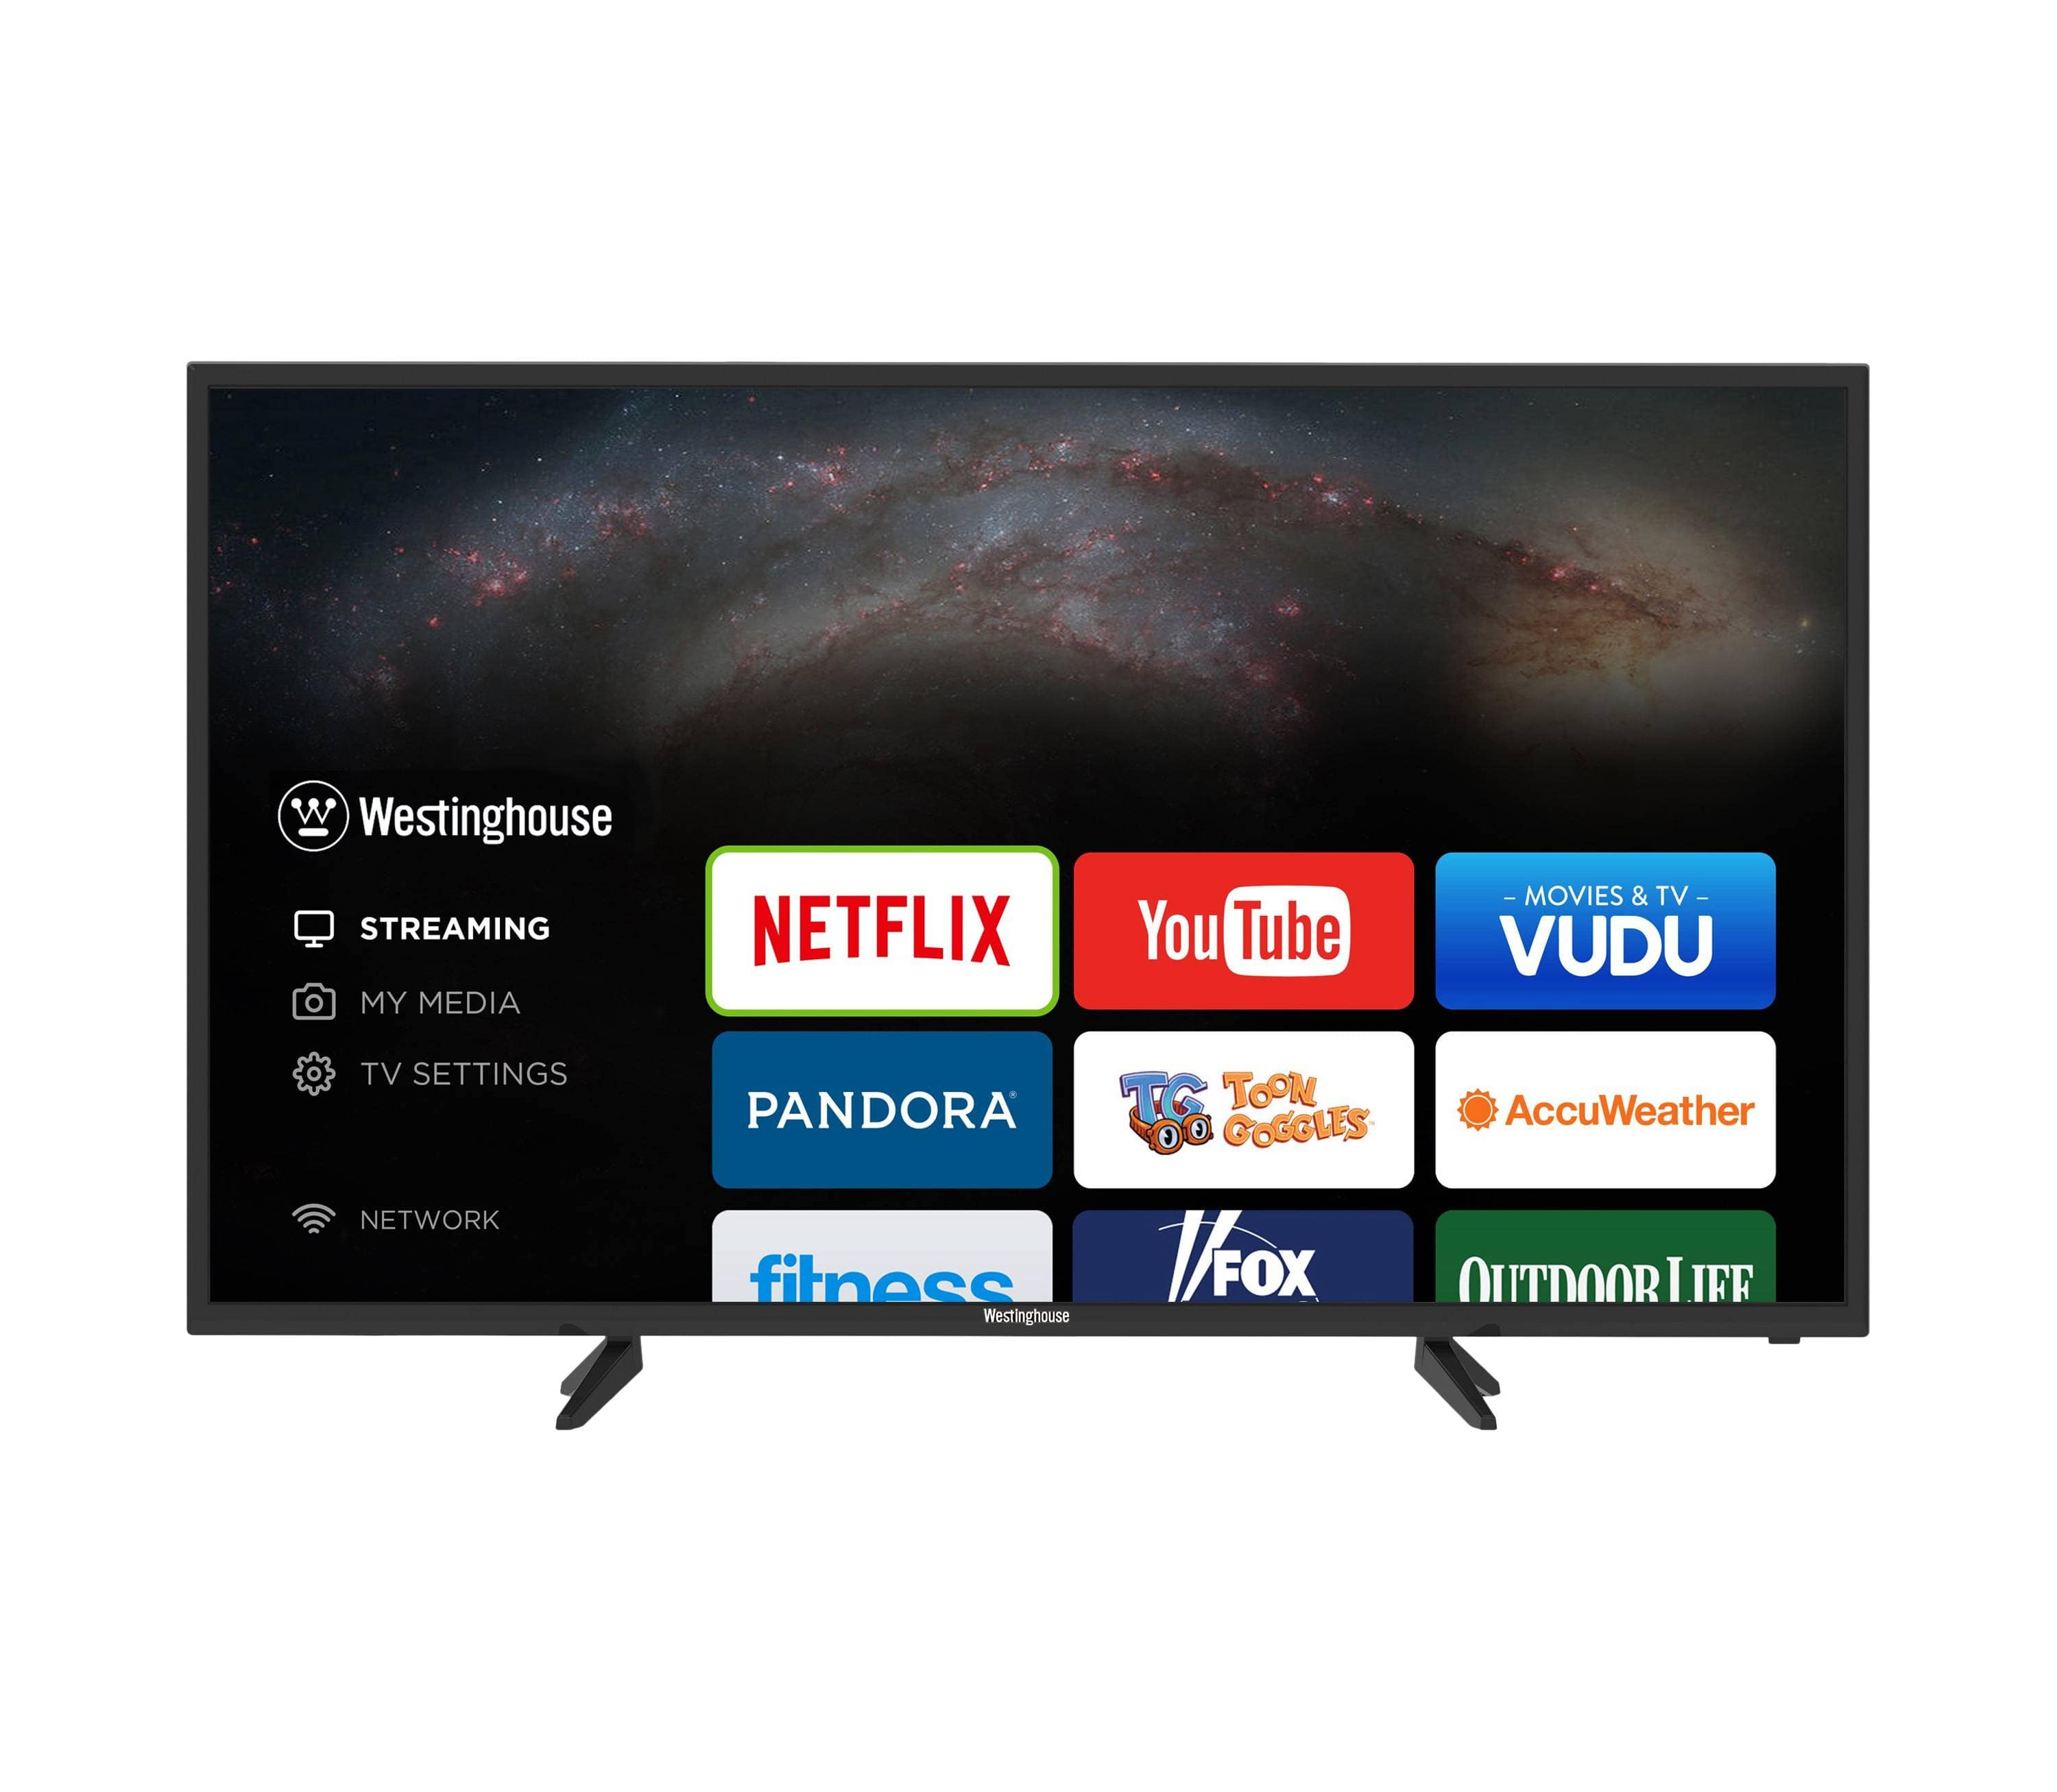 westinghouse 55 4k uhd smart tv target or w 20 off coupon page 5. Black Bedroom Furniture Sets. Home Design Ideas